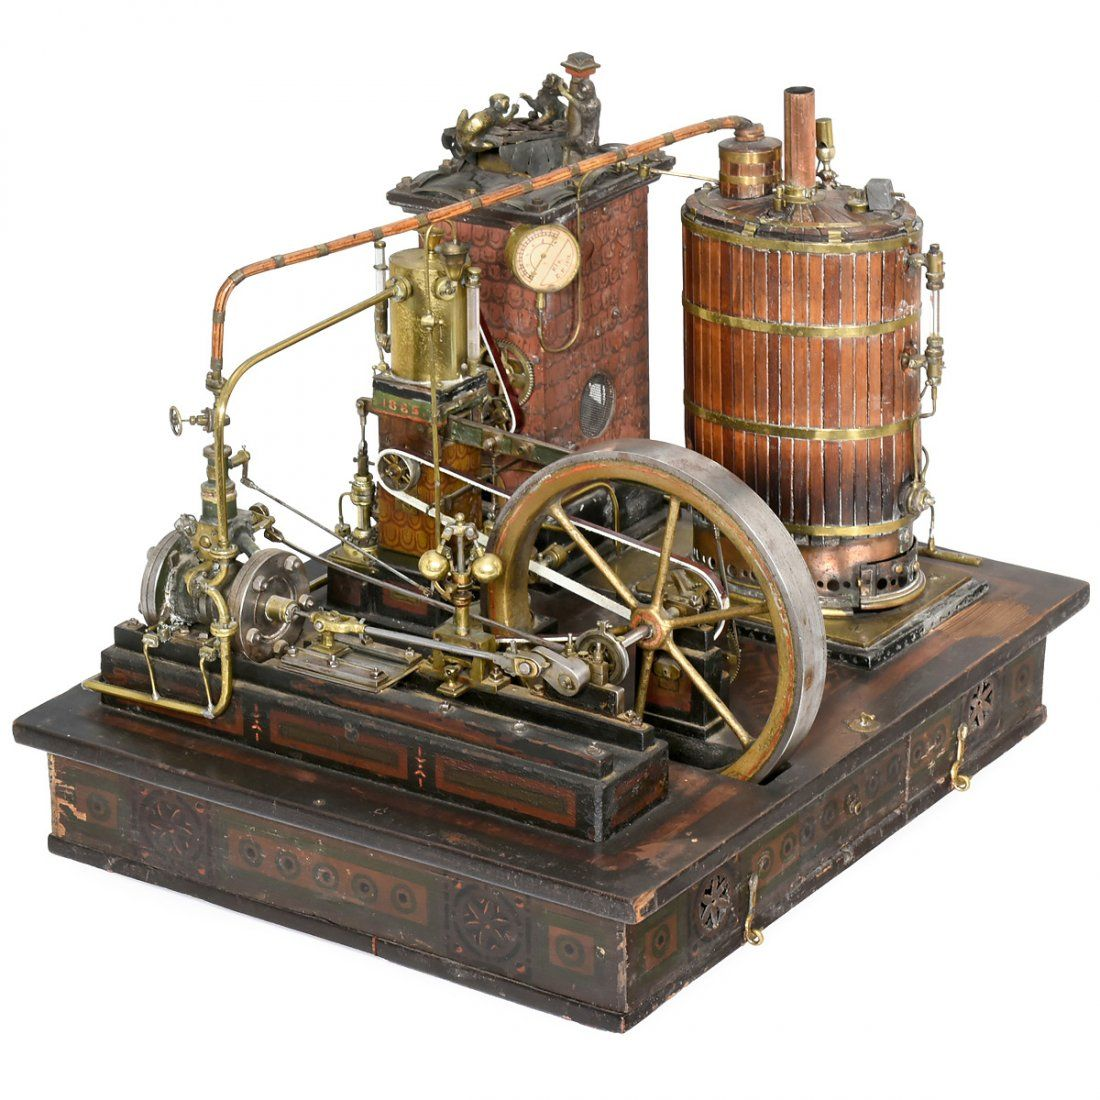 DIY Homemade Steam Engine Running Made Without Any Machining – Diagram Of Steam Steam Engine For Movement